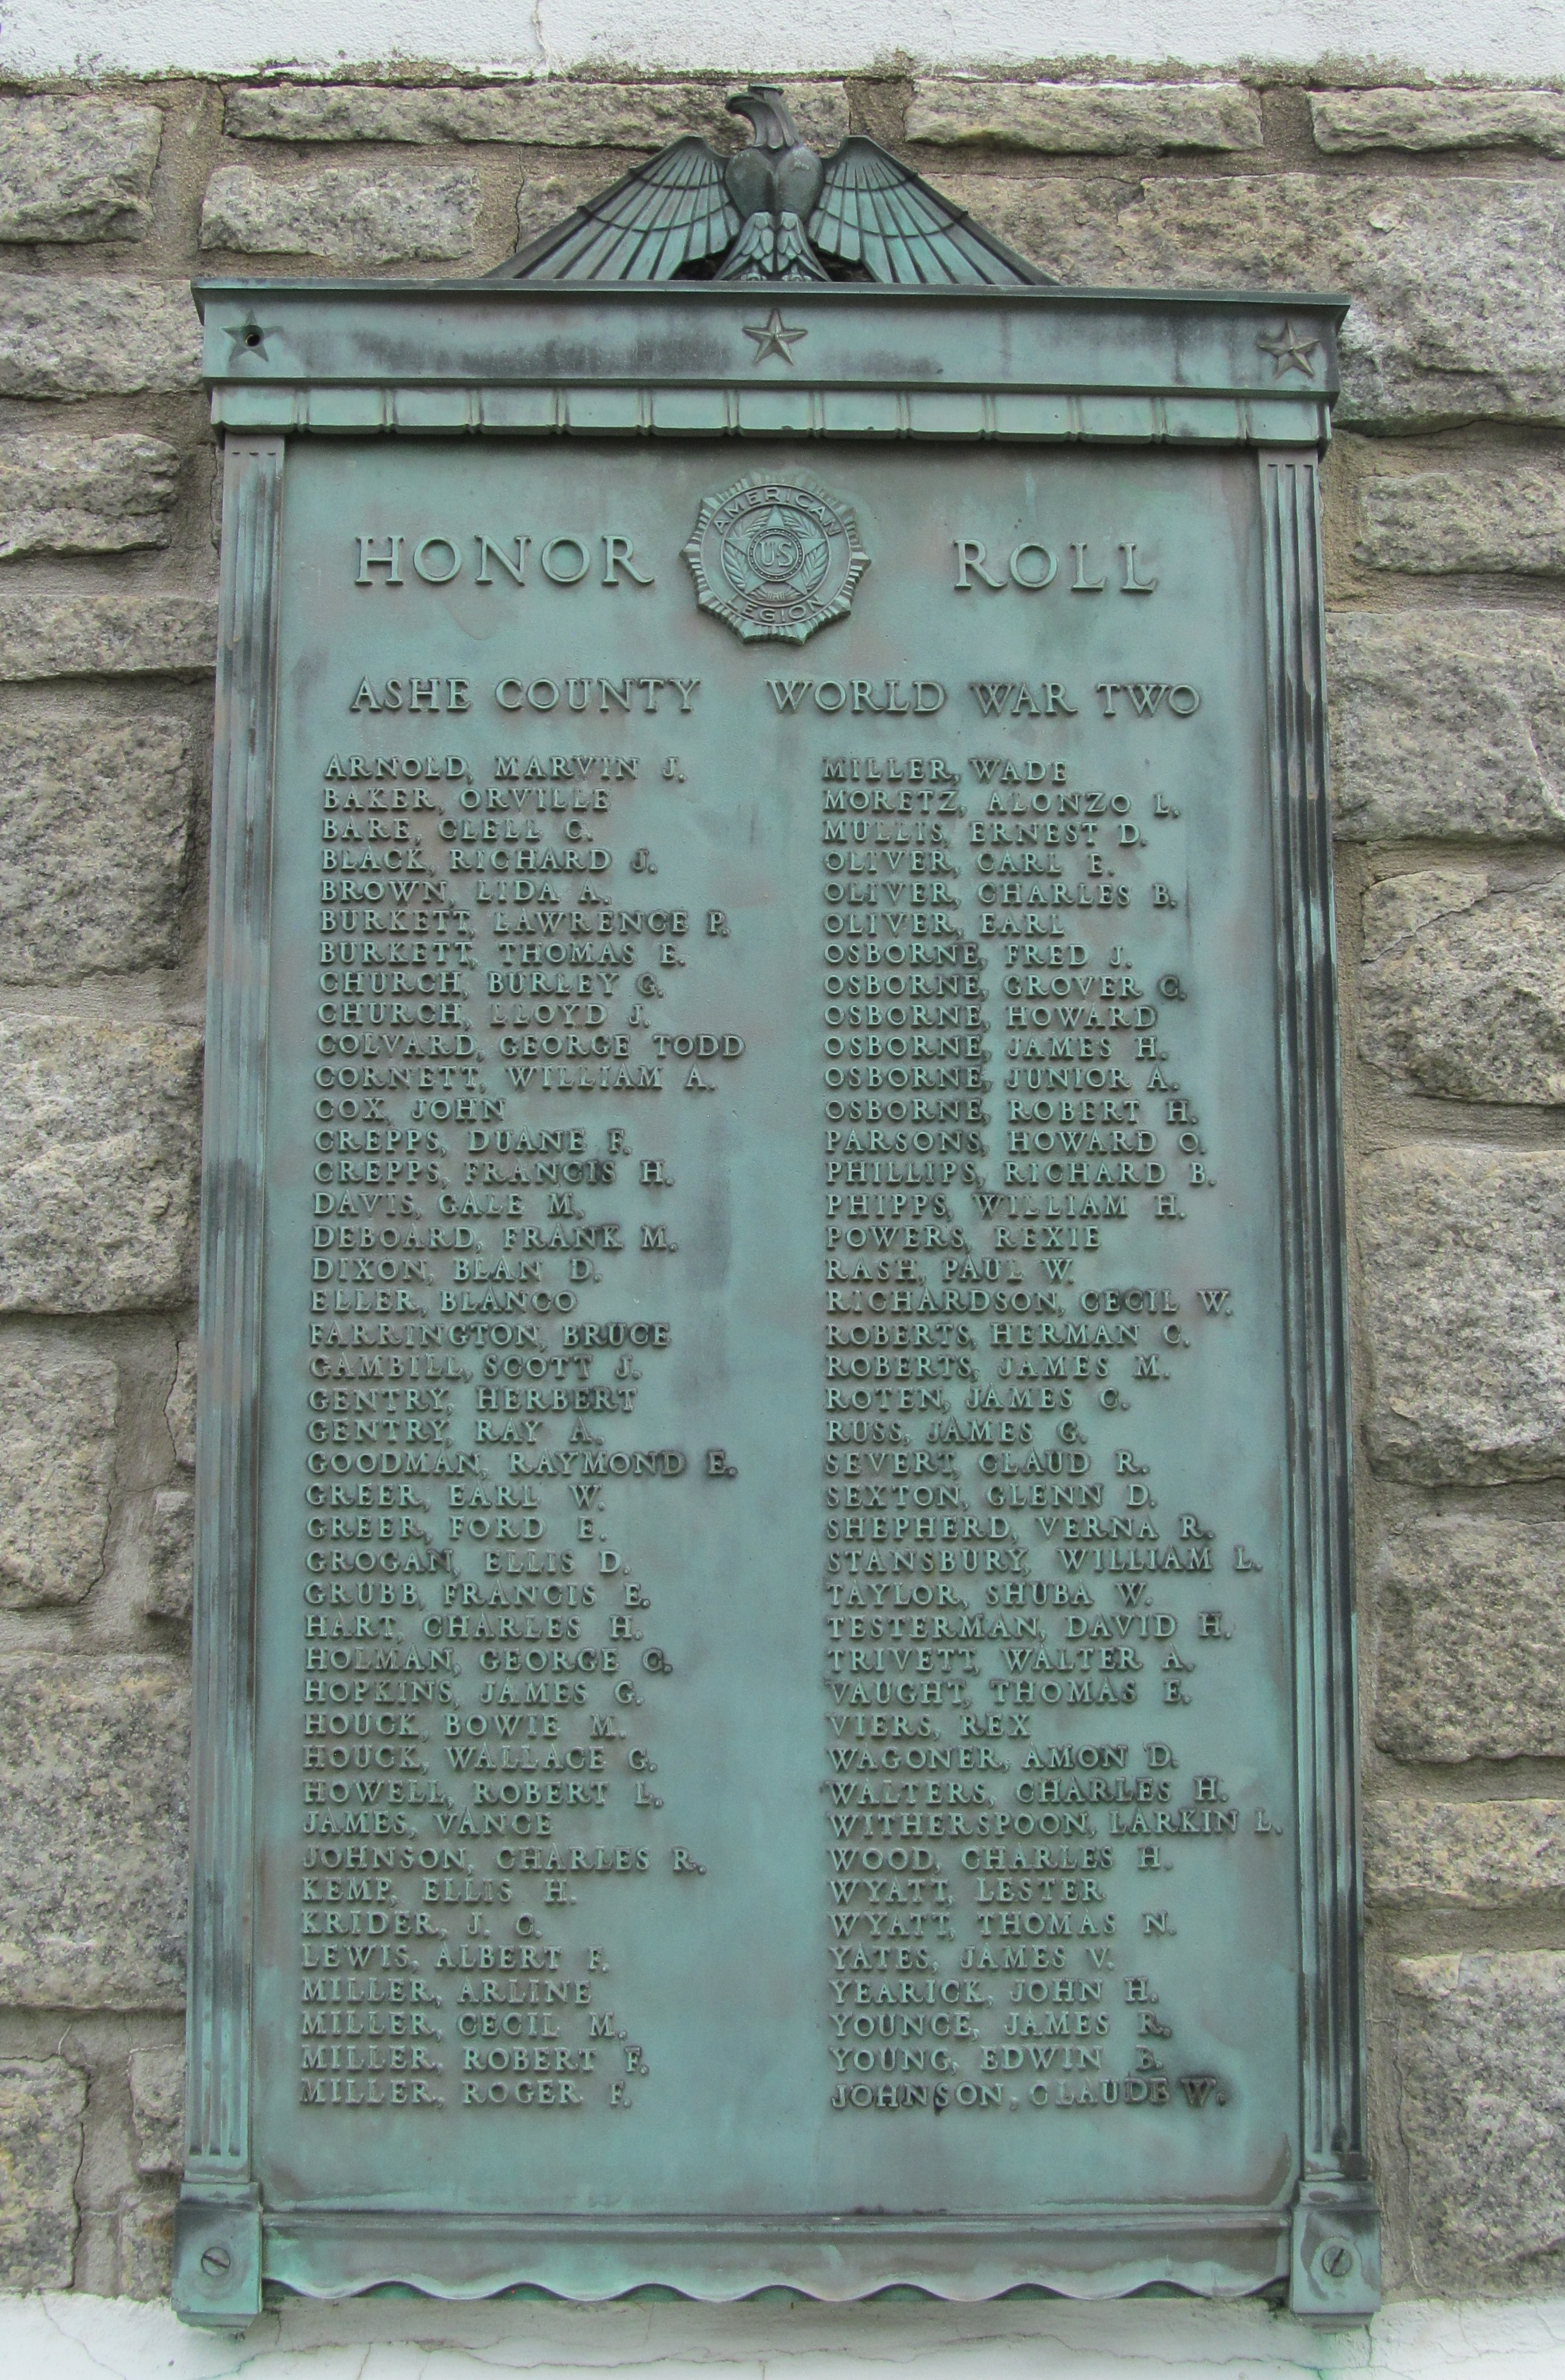 detail of plaque honoring veterans of WWII